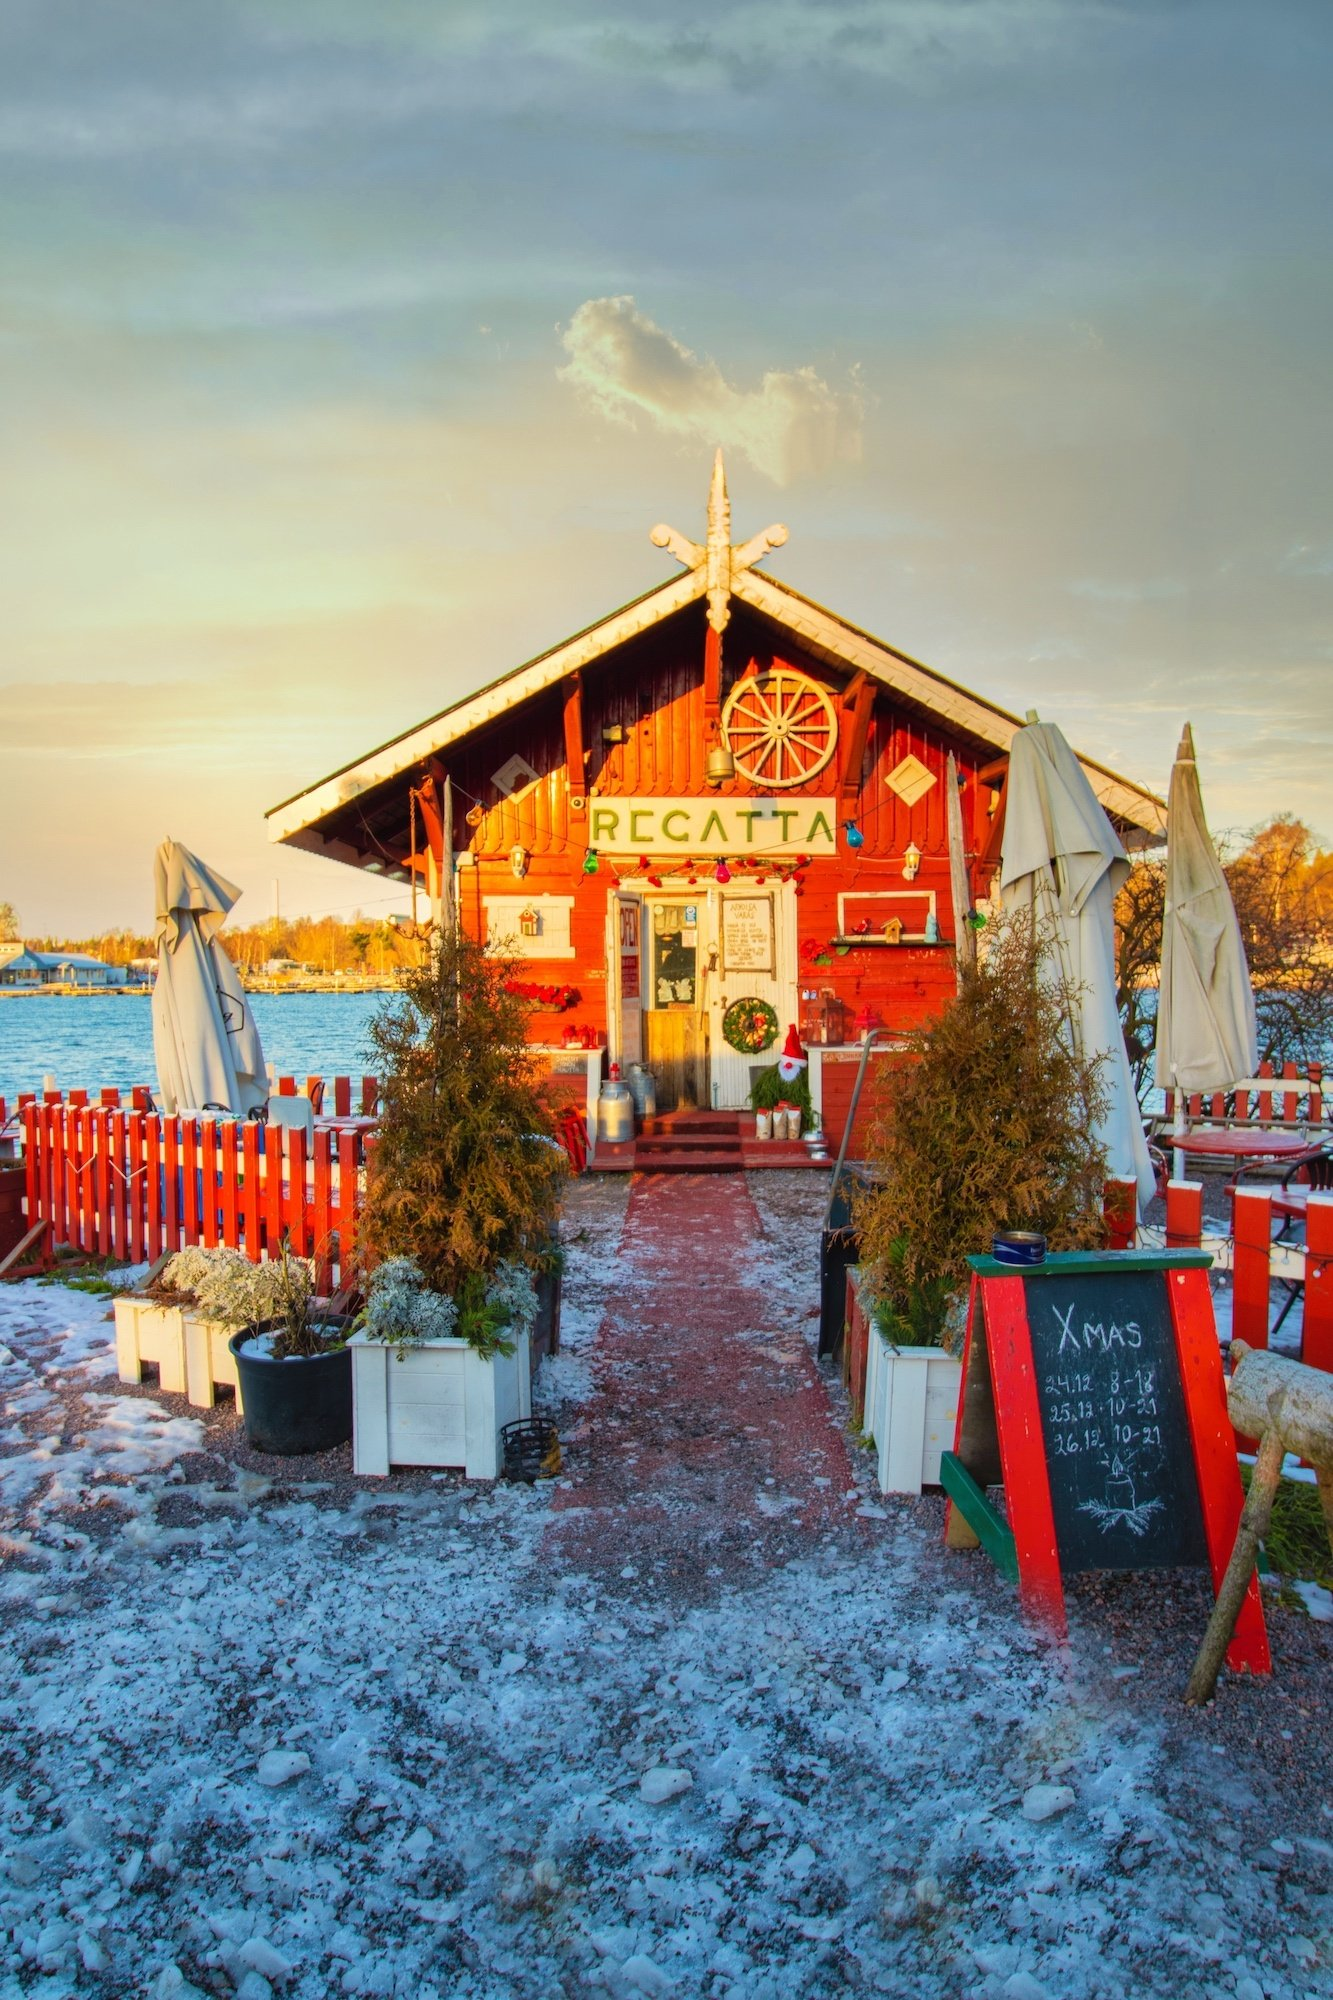 Cafe Regatta in Helsinki is a cozy red cabin right on the water and a great reason to visit Helsinki